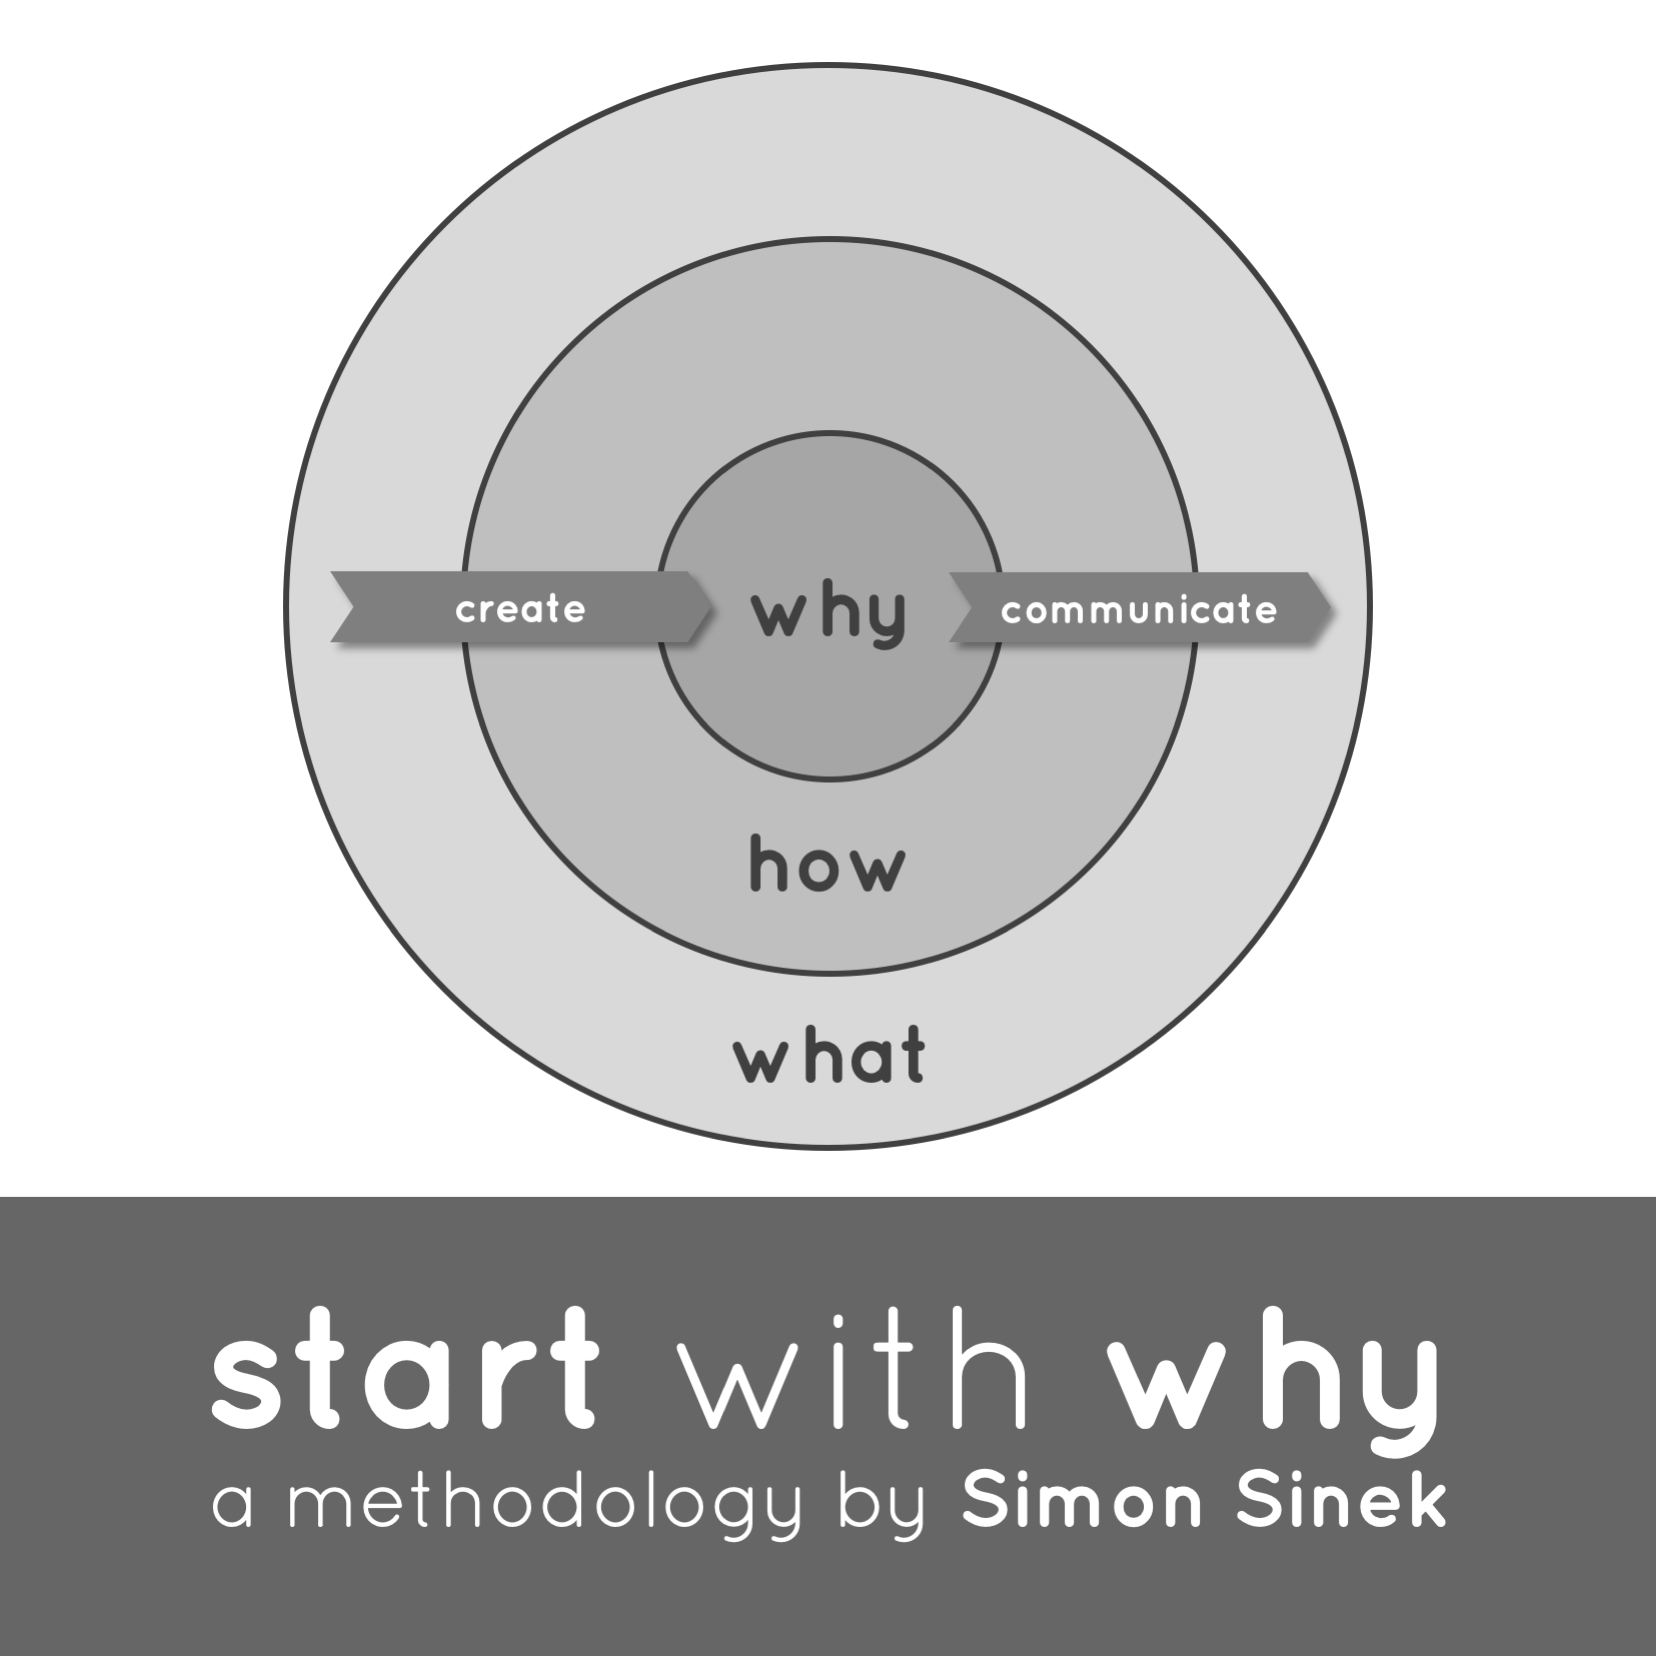 Unusual Games - Start with Why - by Simon Sinek